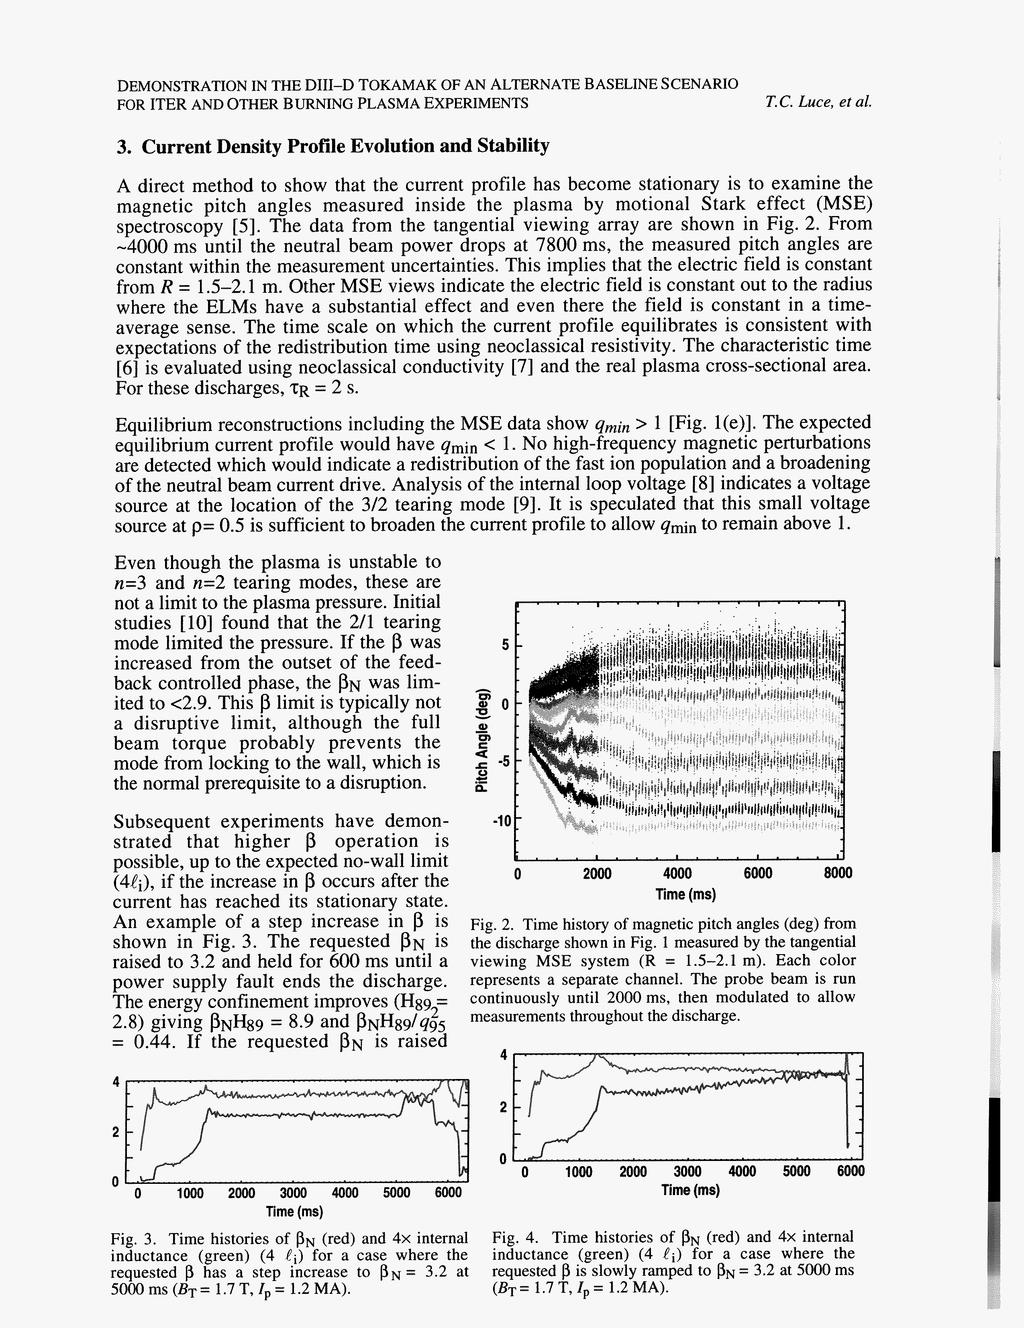 3 Current Density Profile Evolution and Stability A direct method to show that the current profile has become stationary is to examine the magnetic pitch angles measured inside the plasma by motional